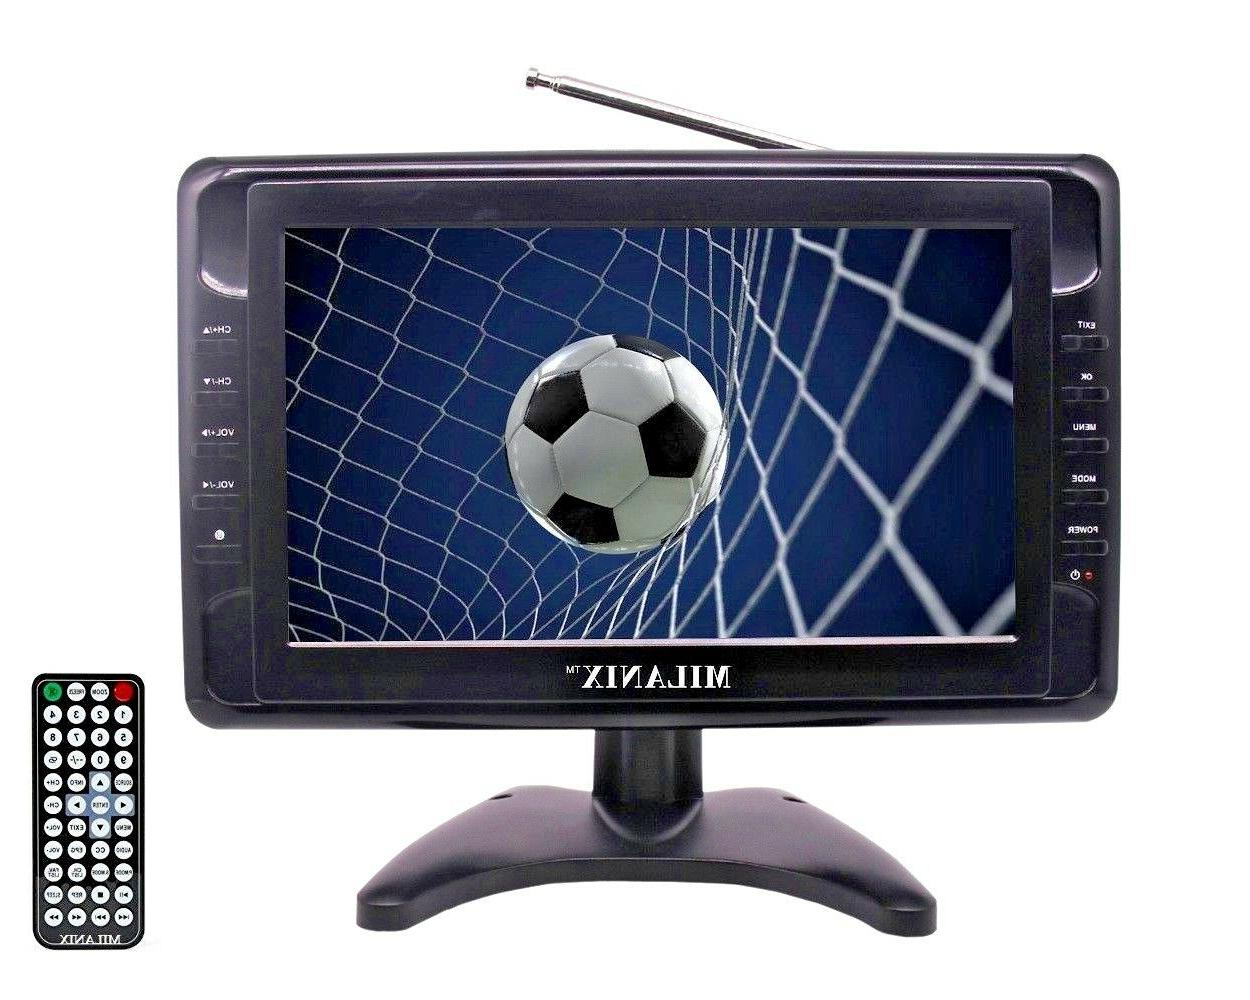 9 portable widescreen lcd tv w digital